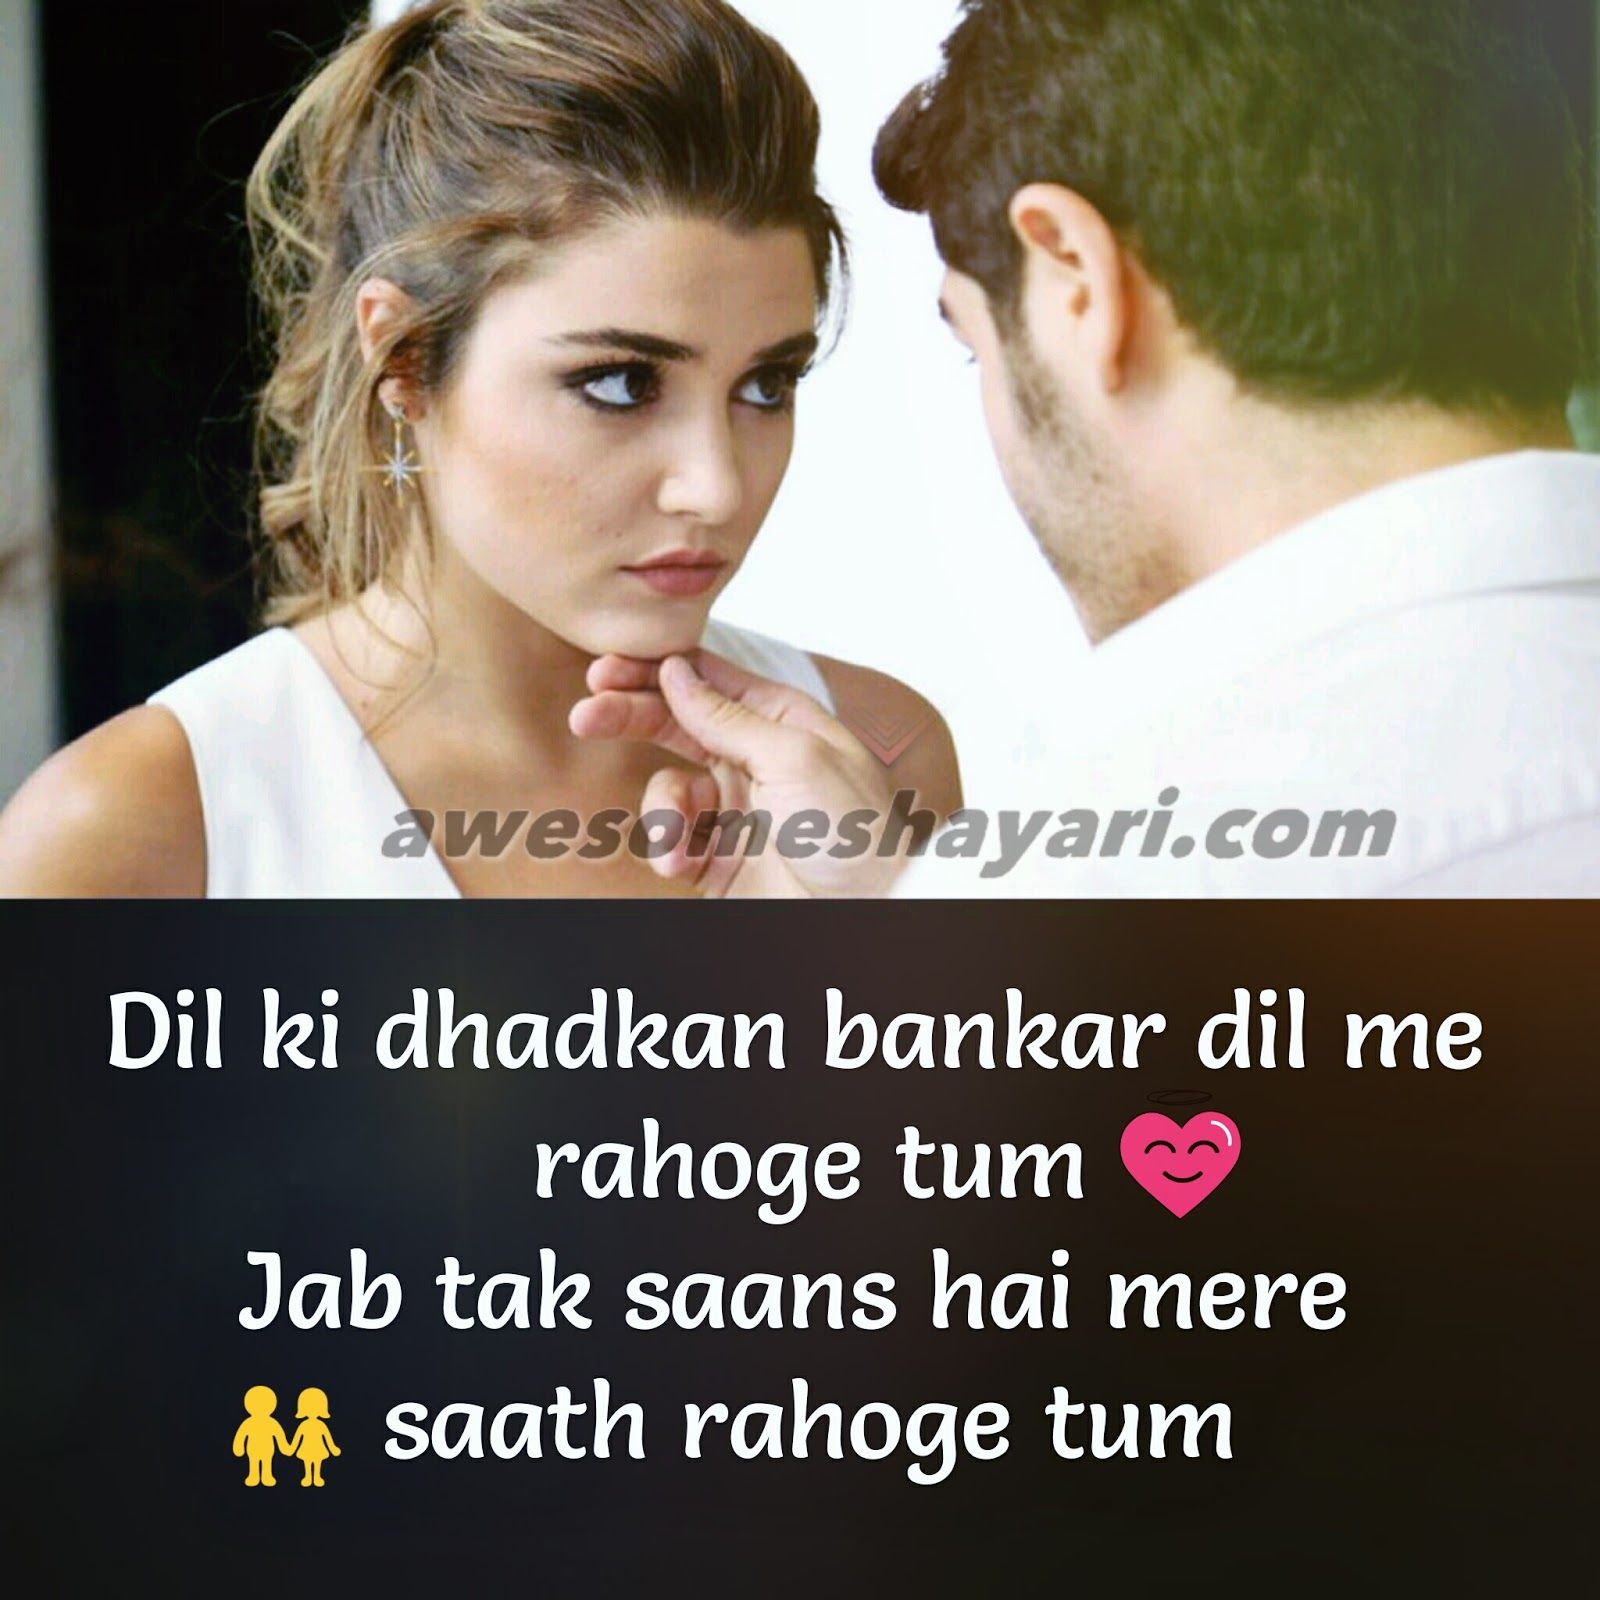 True Love Shayari Images For Facebook Whatsapp Dp Sd Pinterest